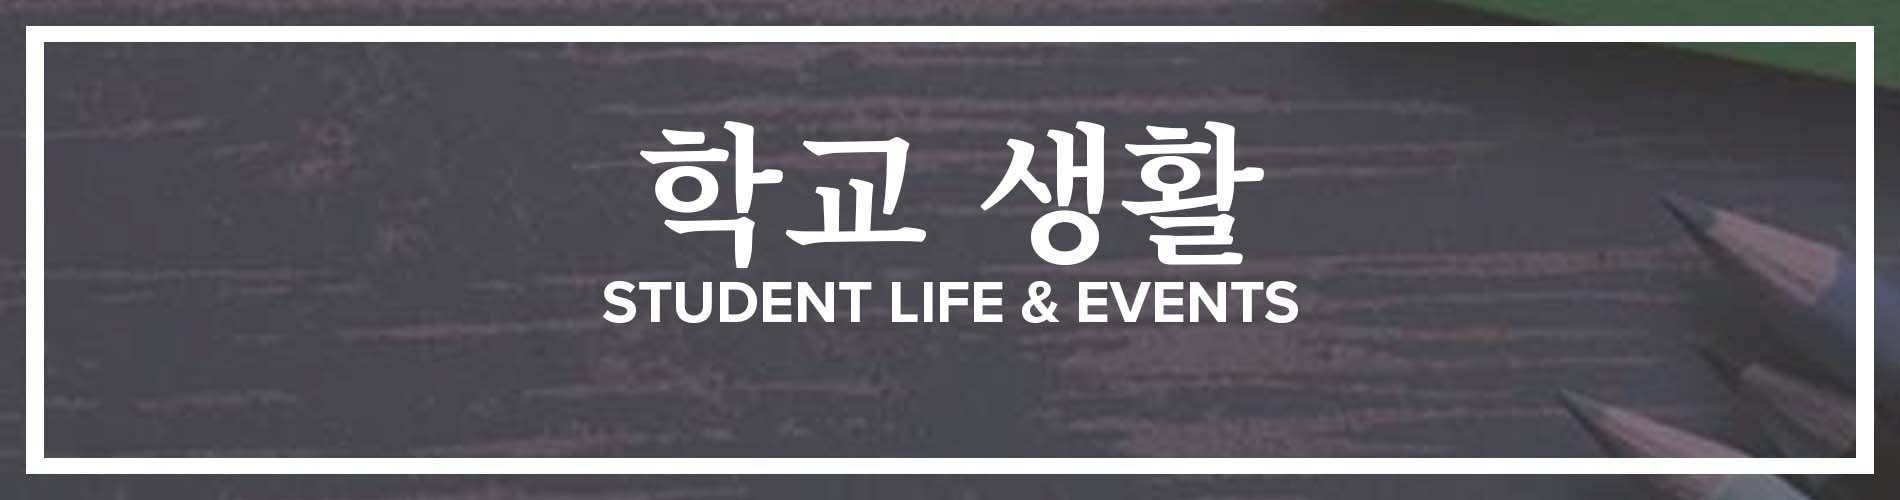 Korean Student Life and Events - Banner